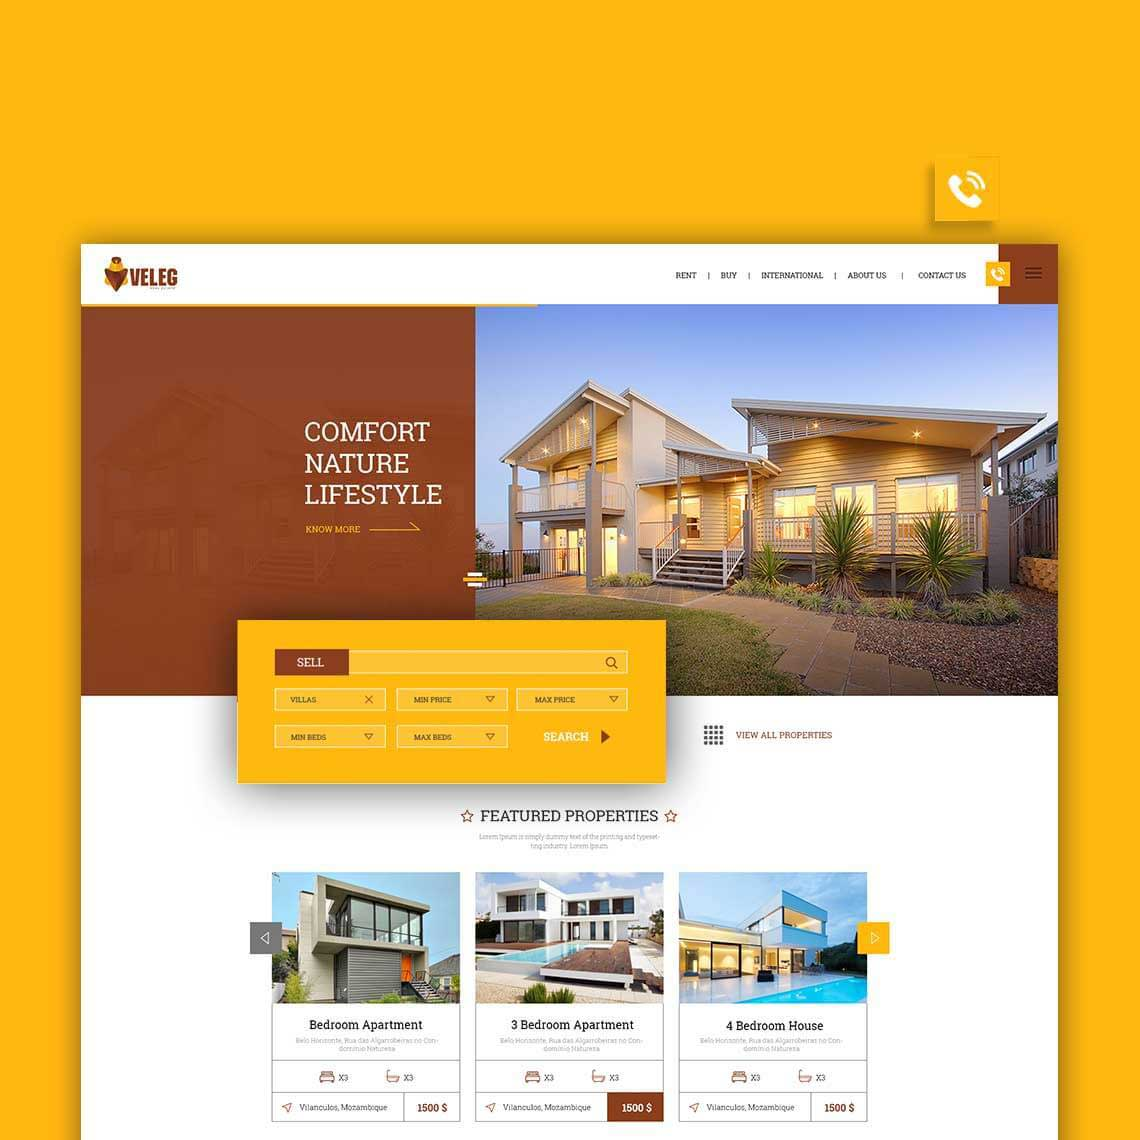 design website like veleg